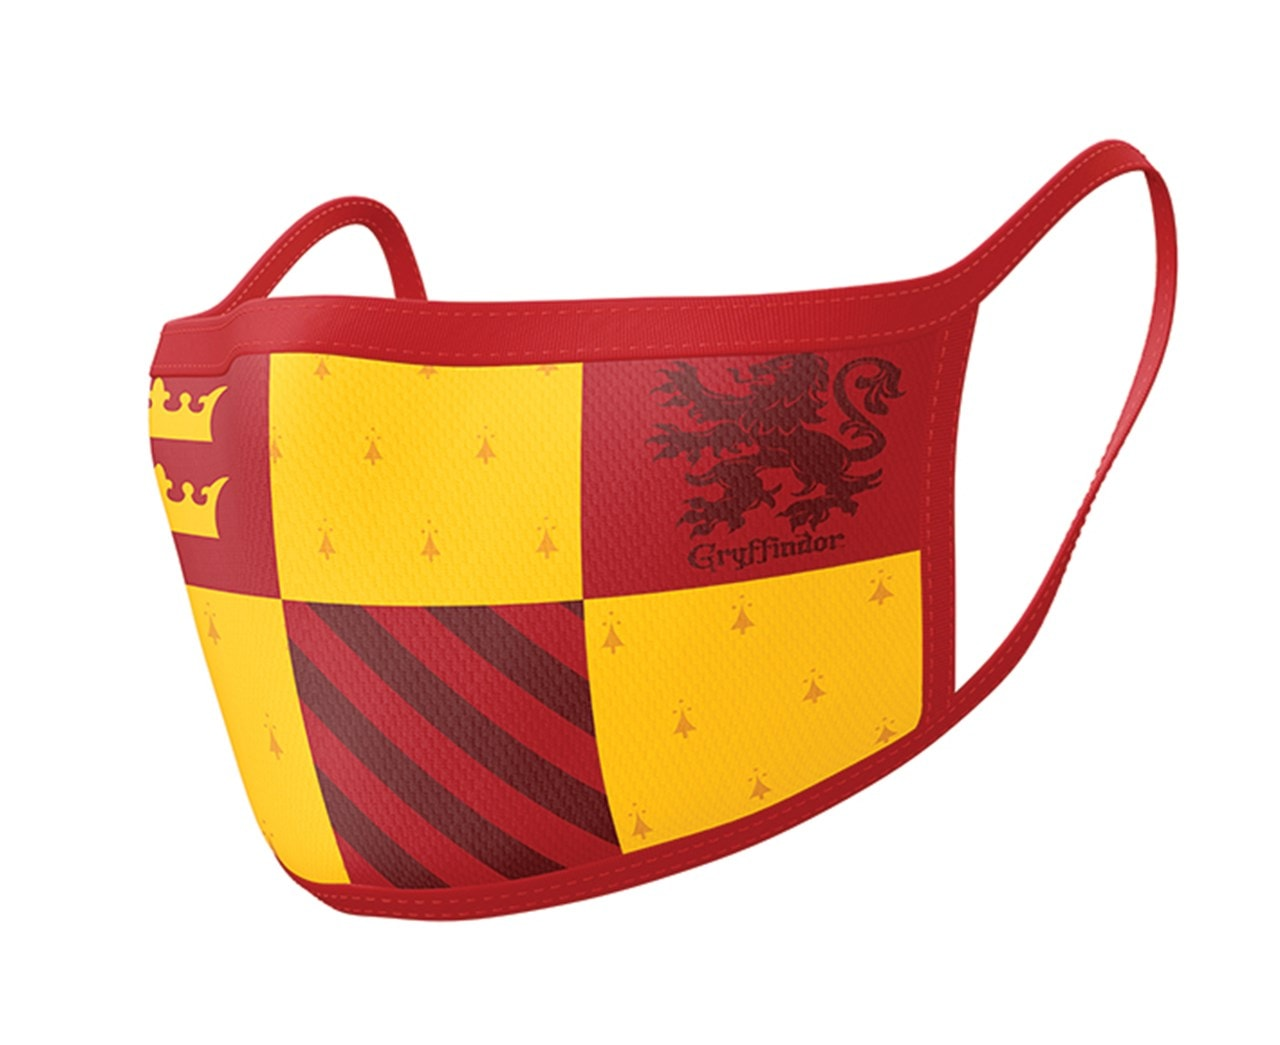 Harry Potter: Gryffindor Face Covering (2 pack) - 1